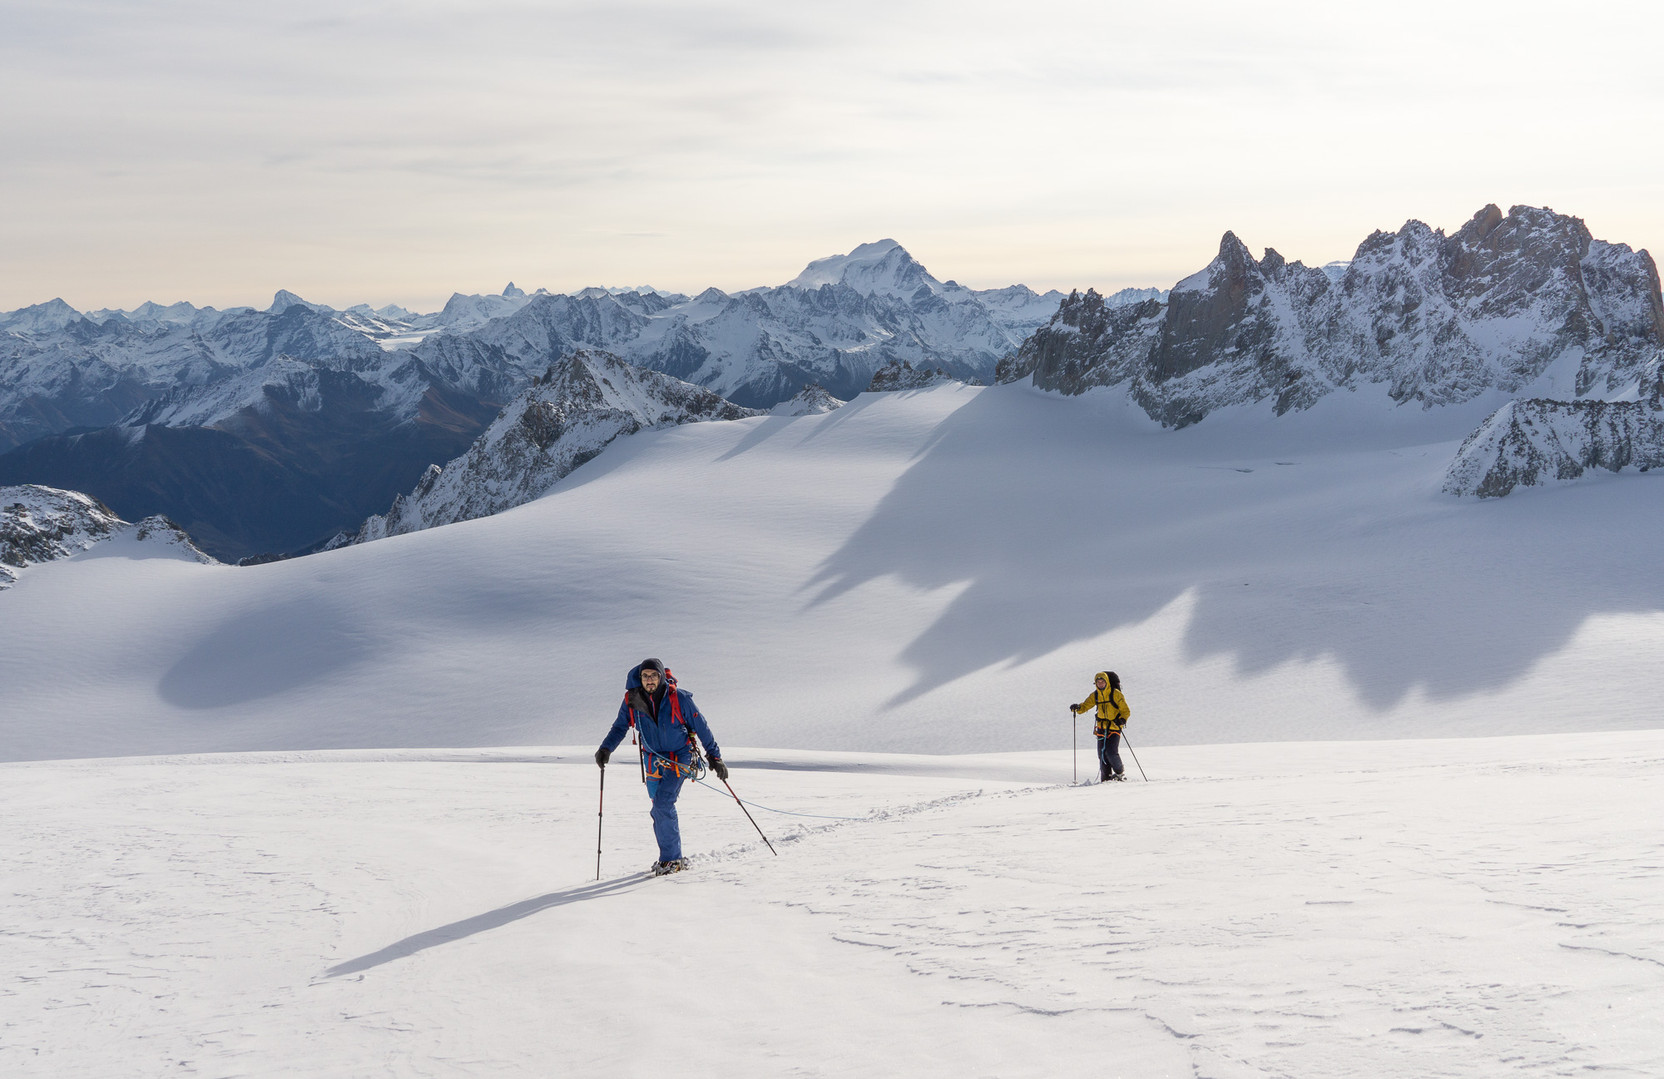 A long and snowy approach to reach the Aiguille du Tour